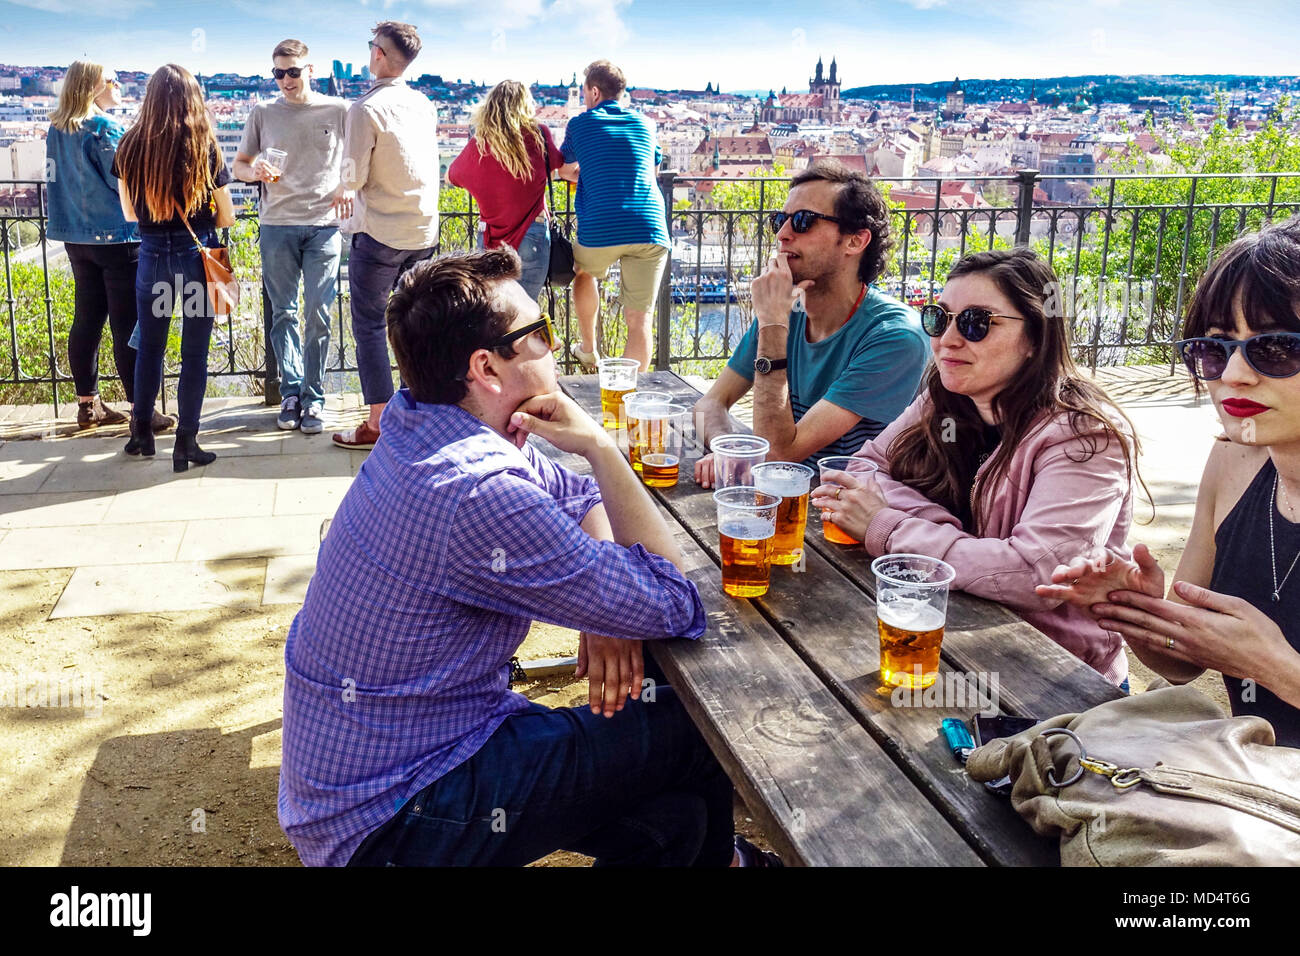 People at beer garden Letensky zamecek in Letna Park, Prague, Czech Republic - Stock Image